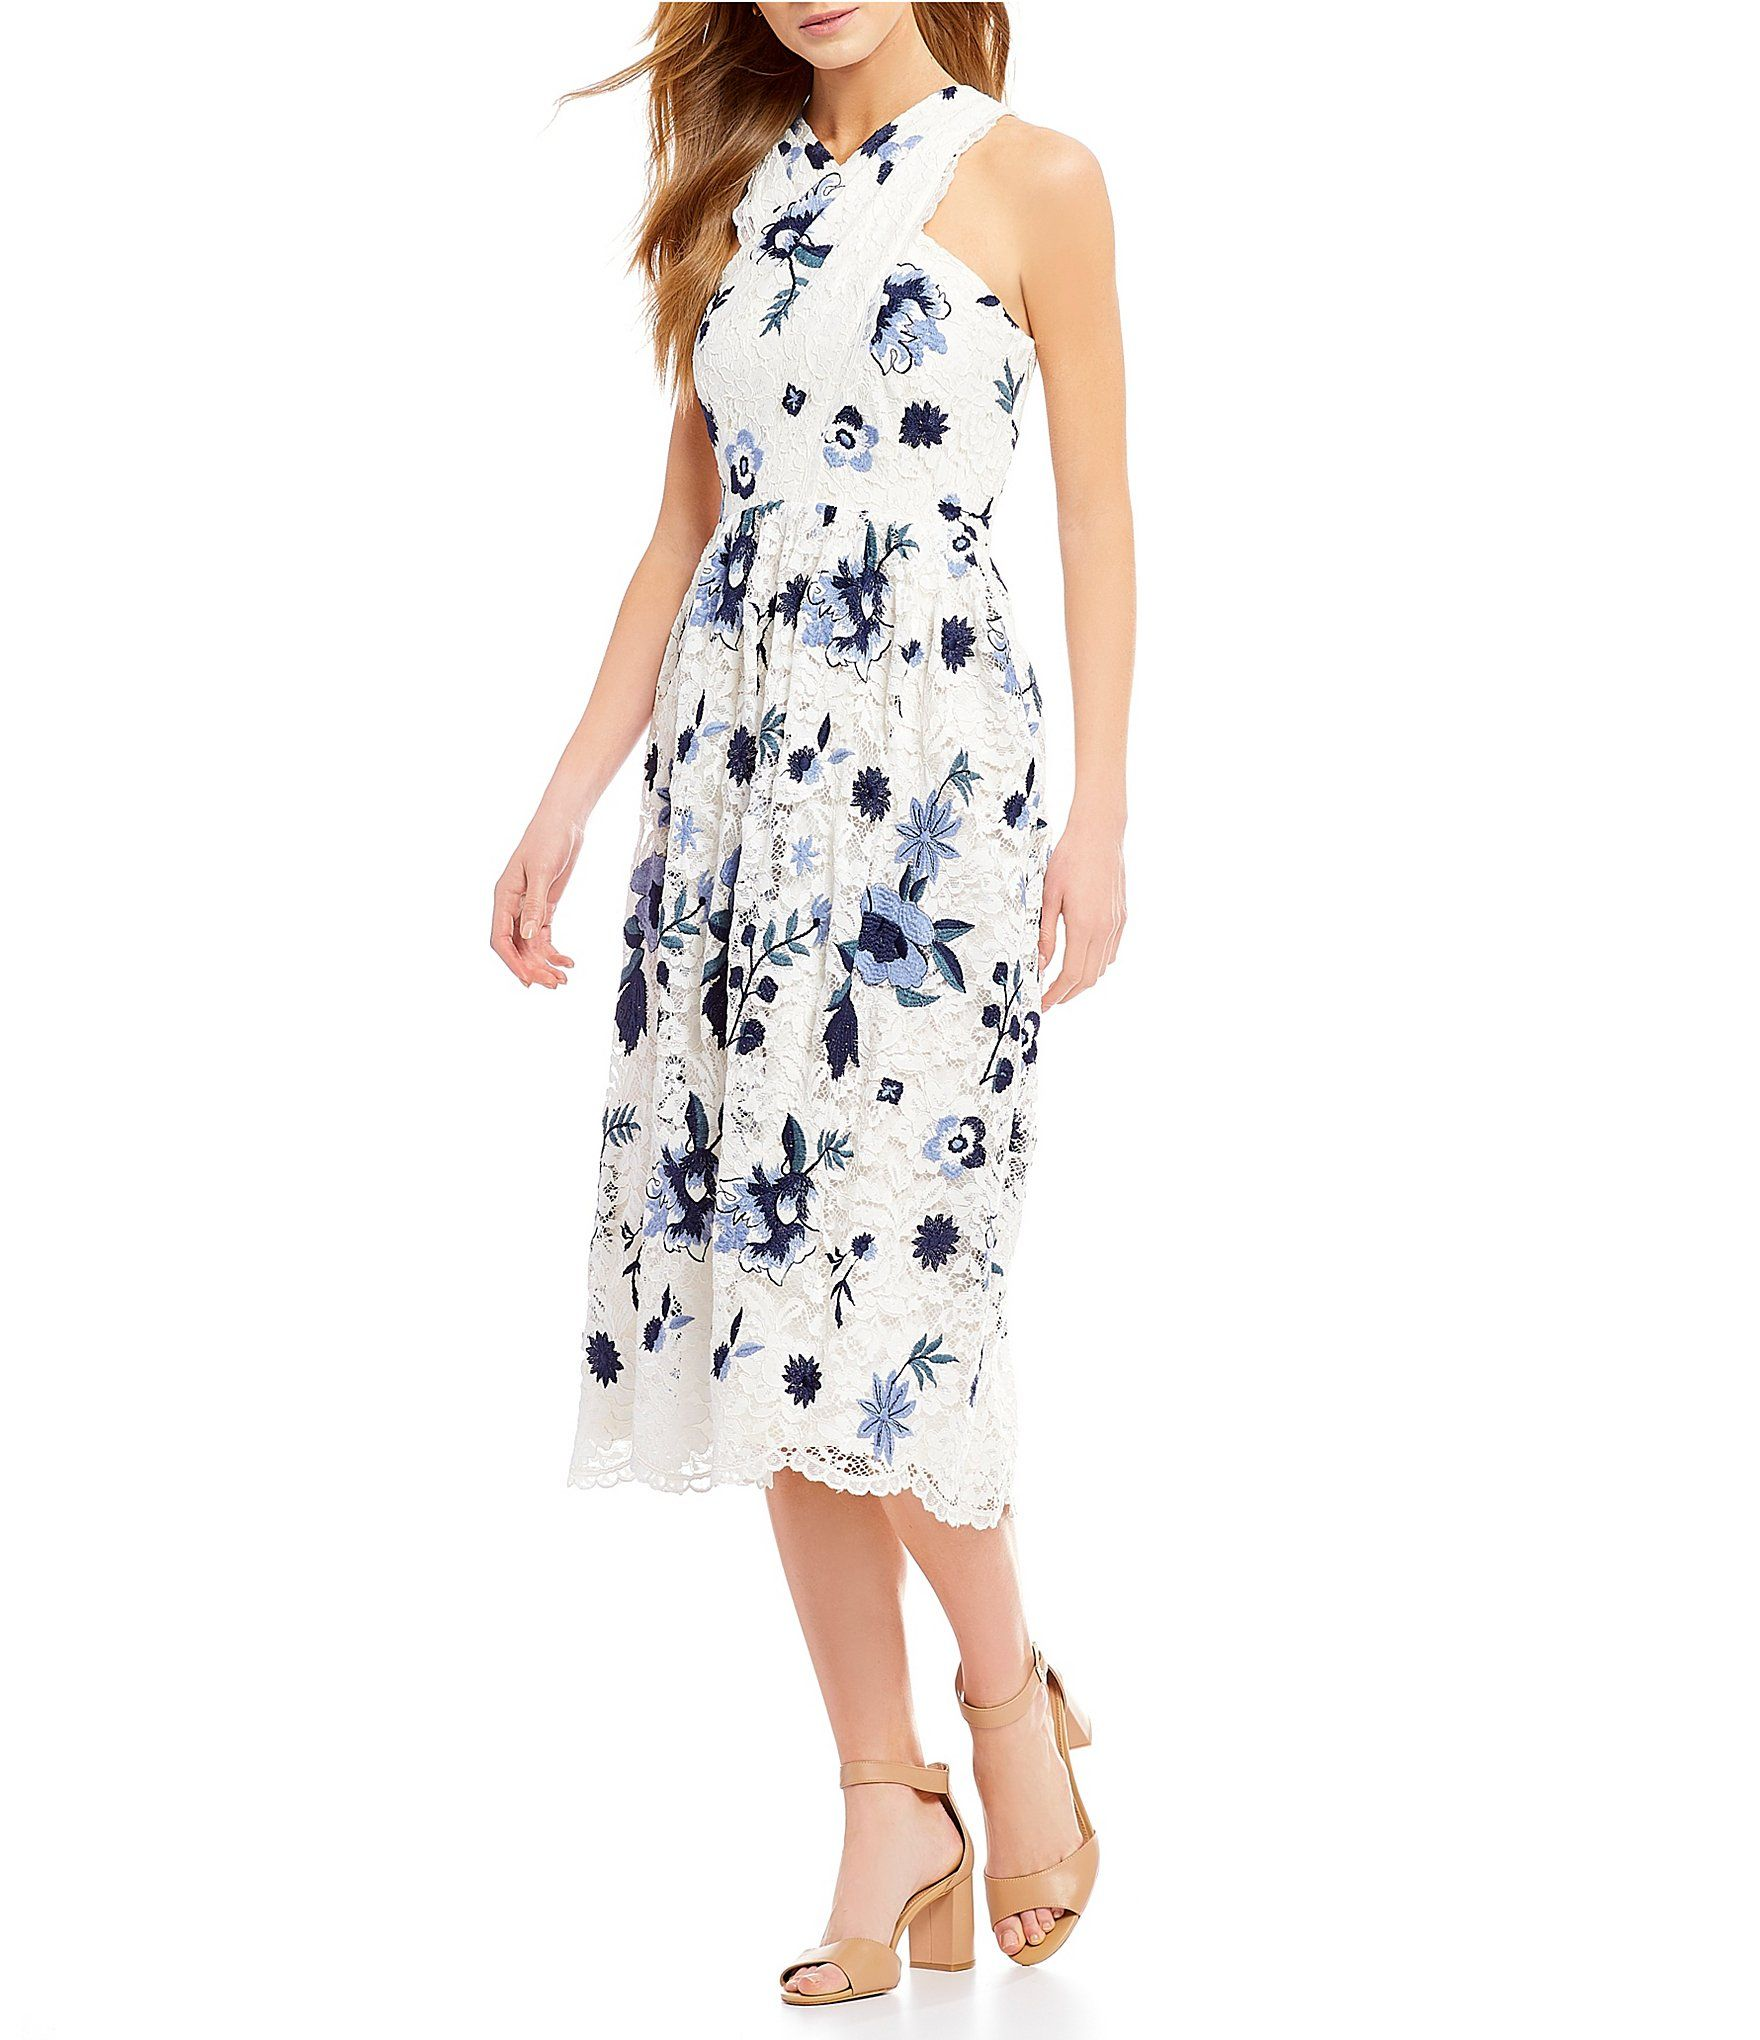 50a4a938bde Antonio Melani Floss Floral Print Lace Halter Midi Dress  Dillards ...